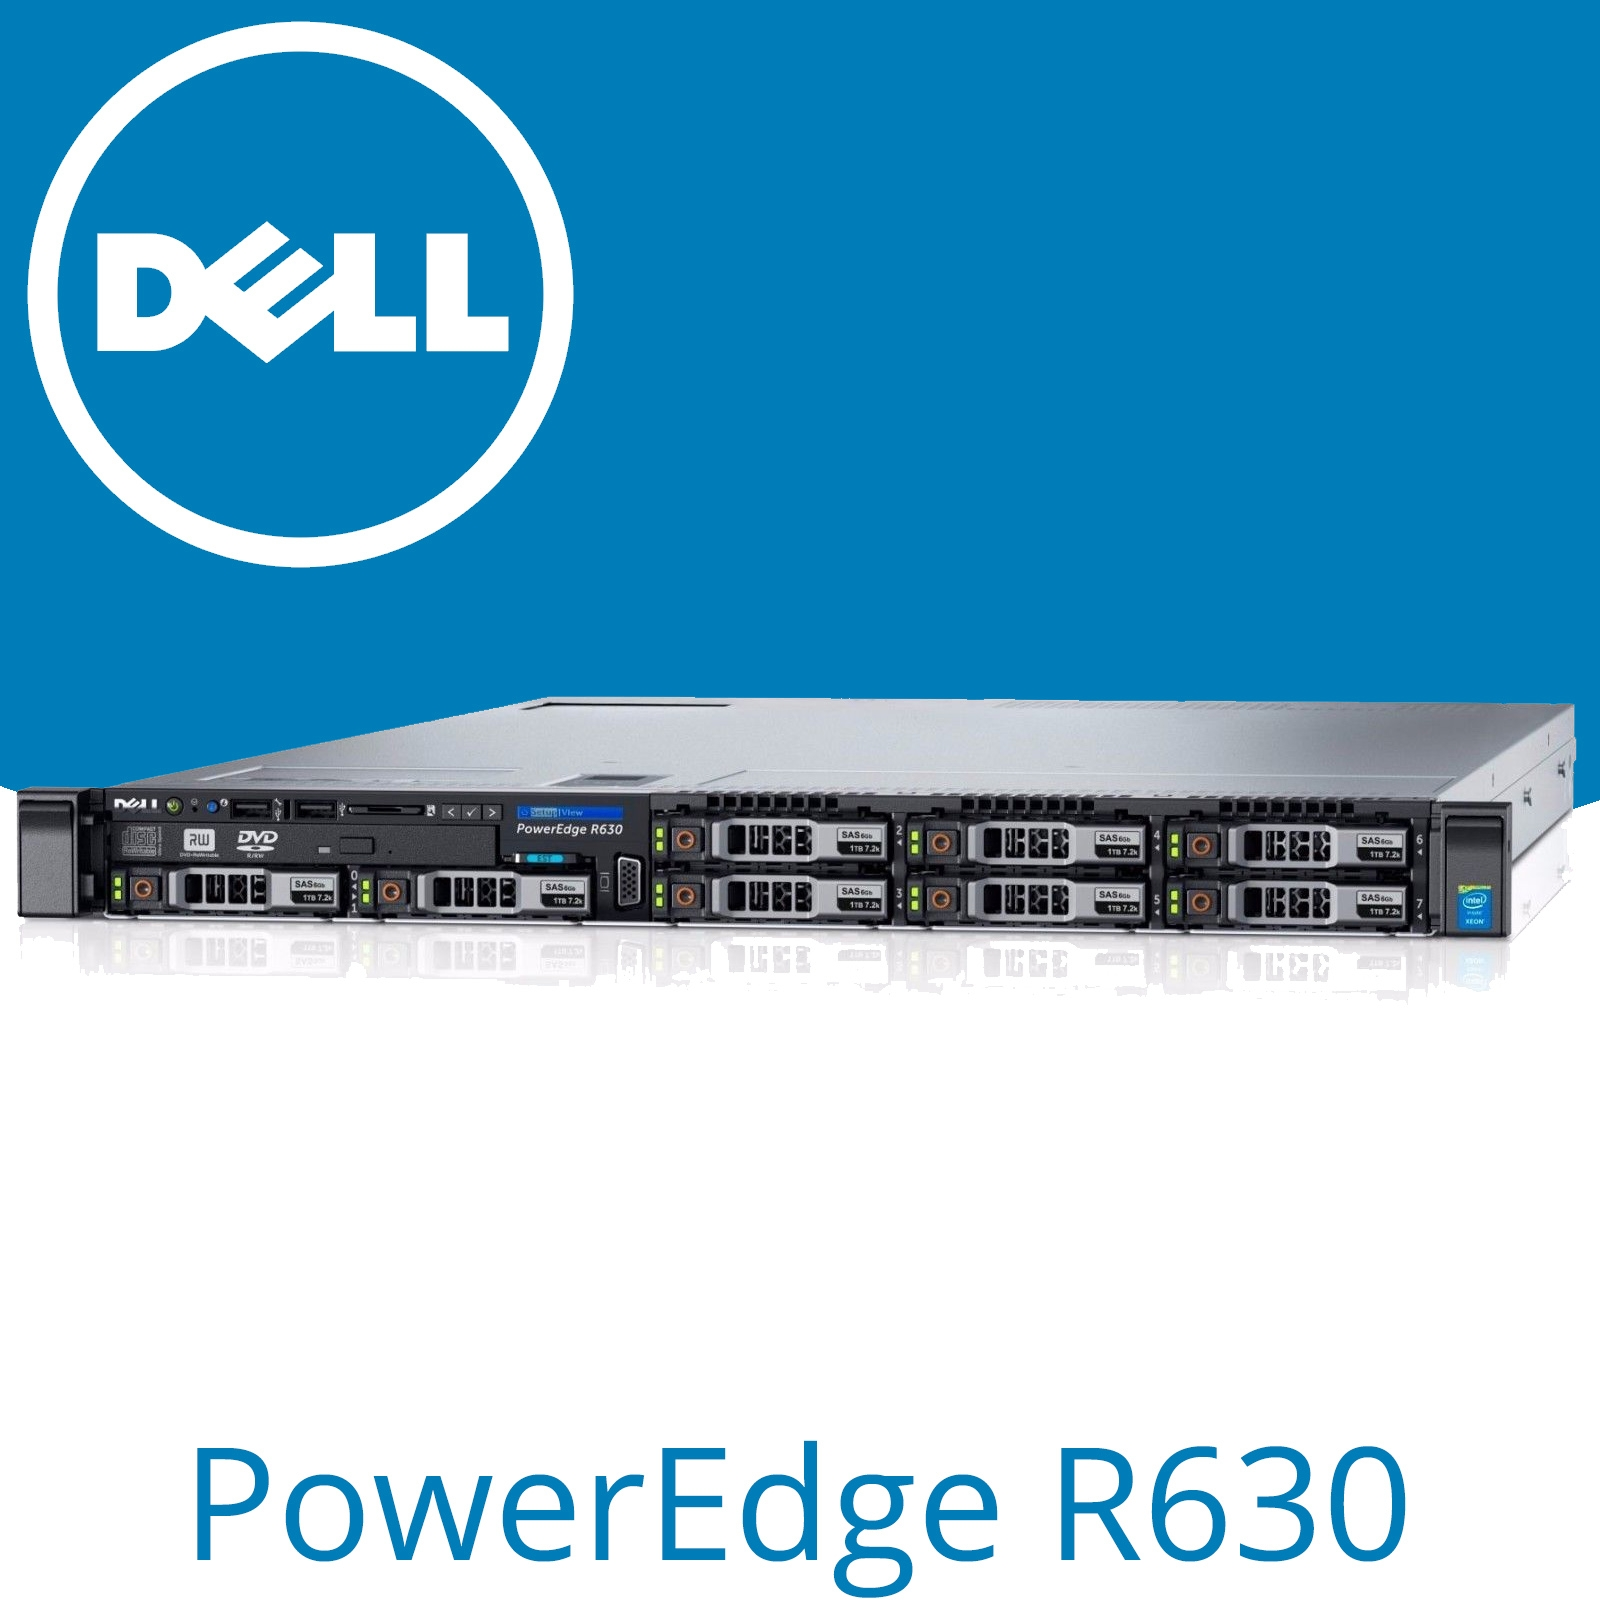 Details about Dell PowerEdge R630 2x E5-2630 V3 Xeon Eight Core 32GB RAM  H730 1GB 1U Server